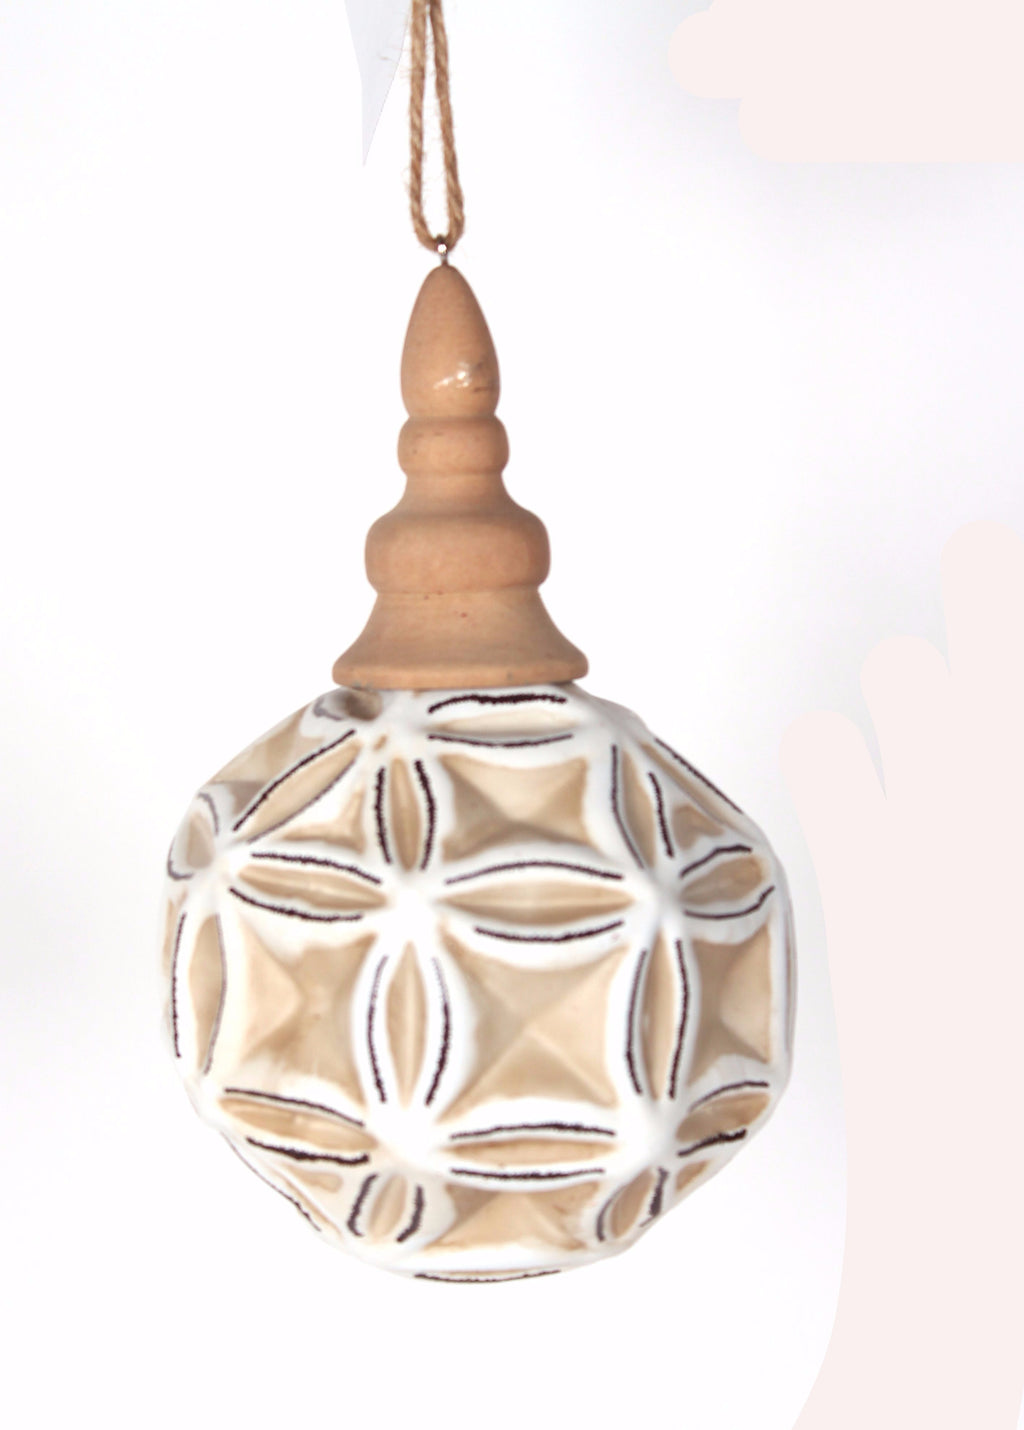 GLASS AND WOOD DIMPLED ORNAMENT